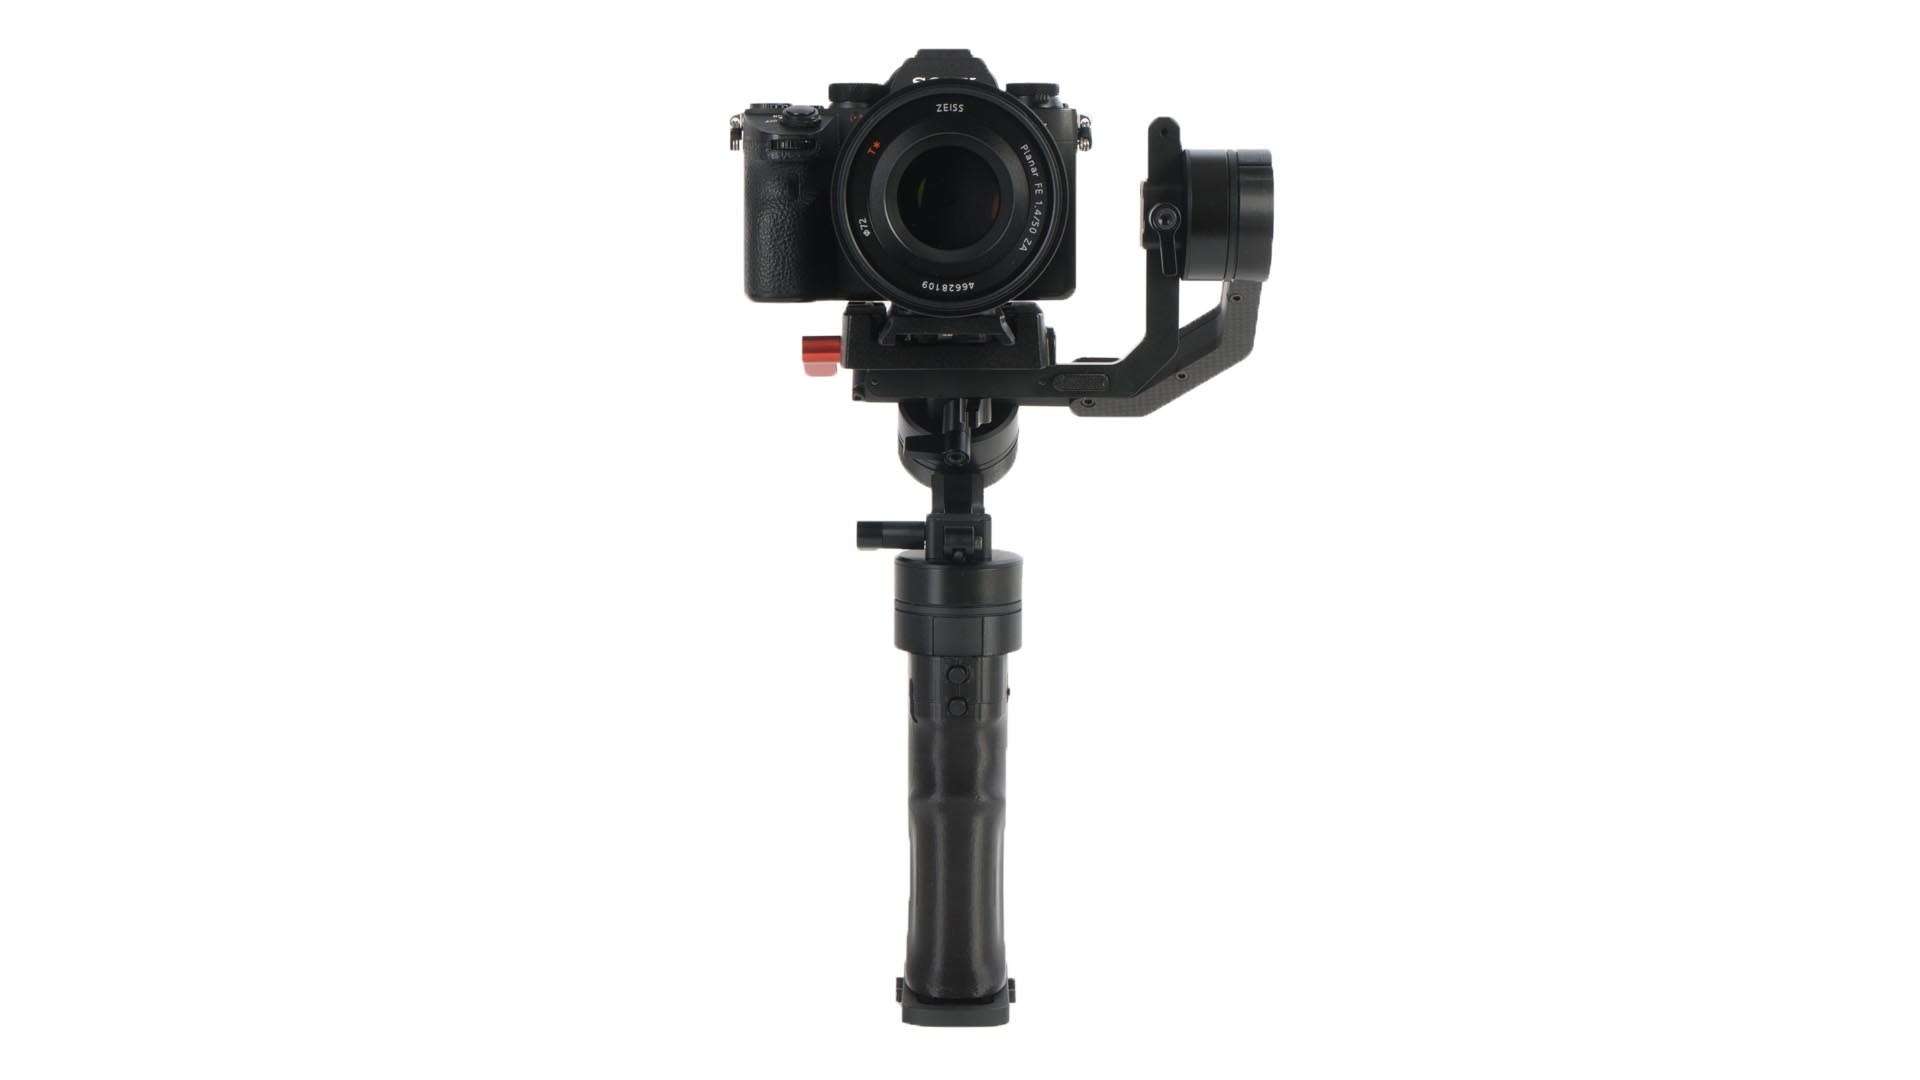 icecam gimbal tiny 3 vision 1